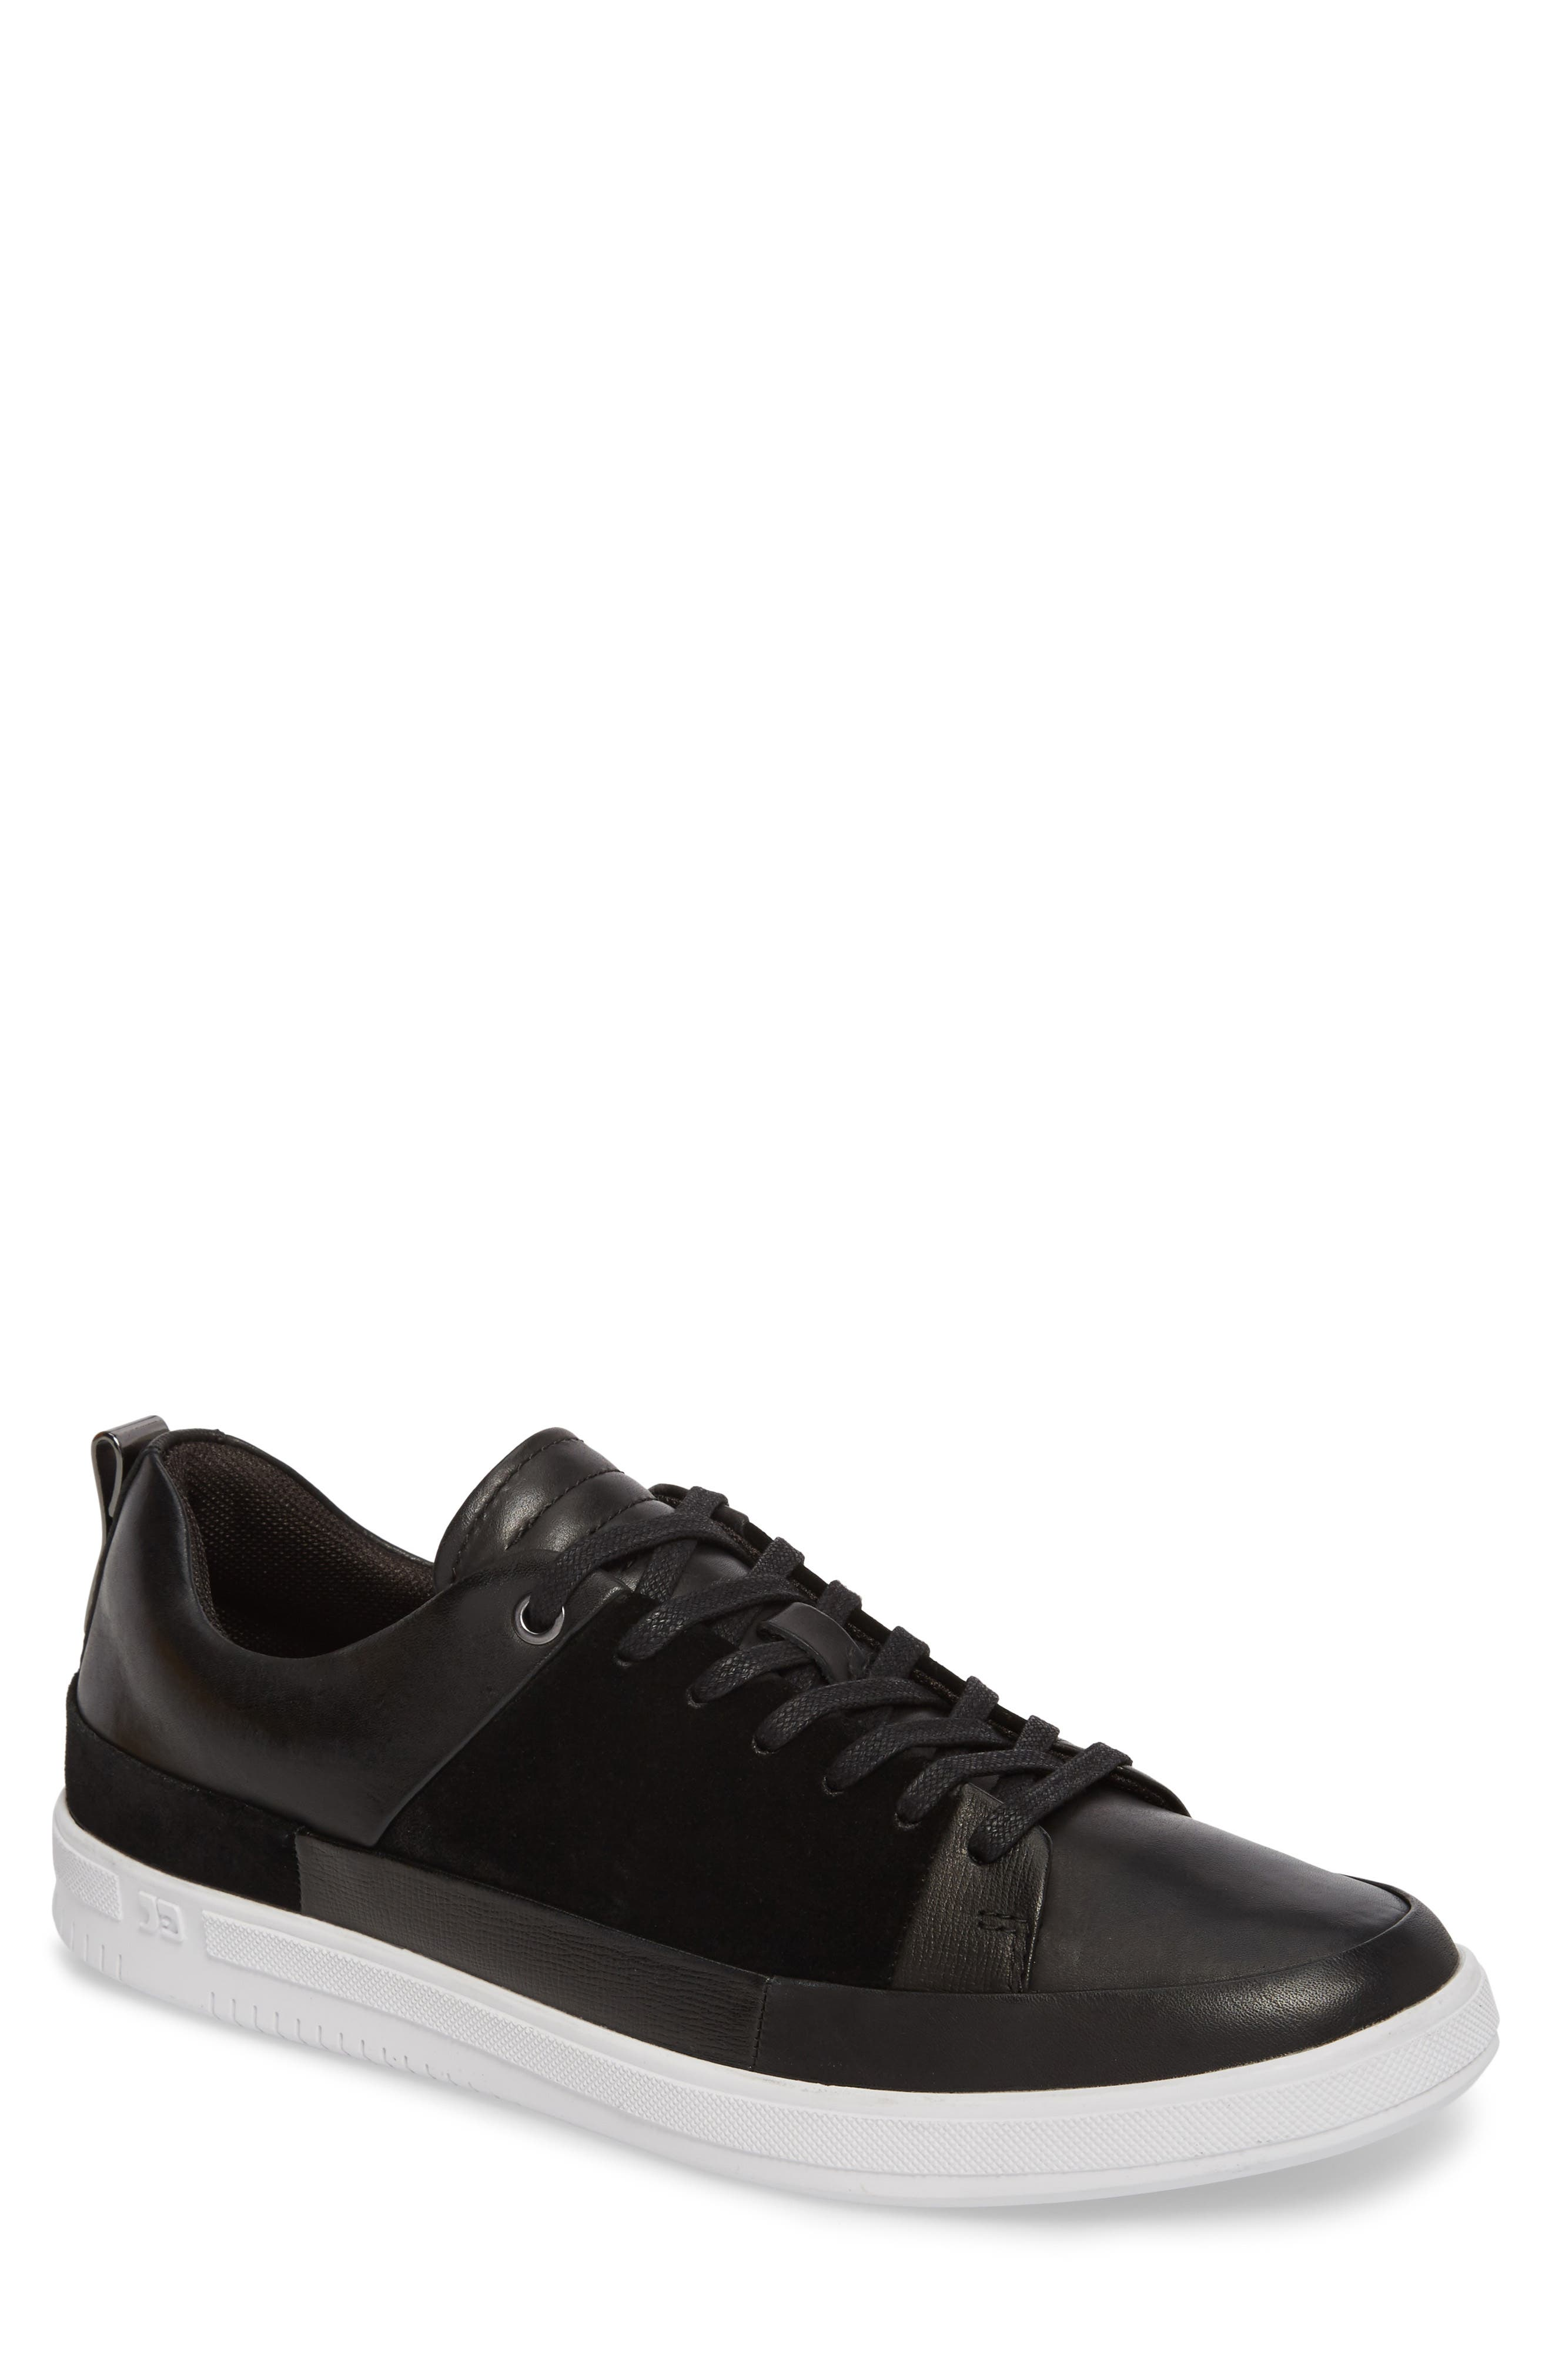 Slick Sneaker,                             Main thumbnail 1, color,                             BLACK LEATHER/ SUEDE